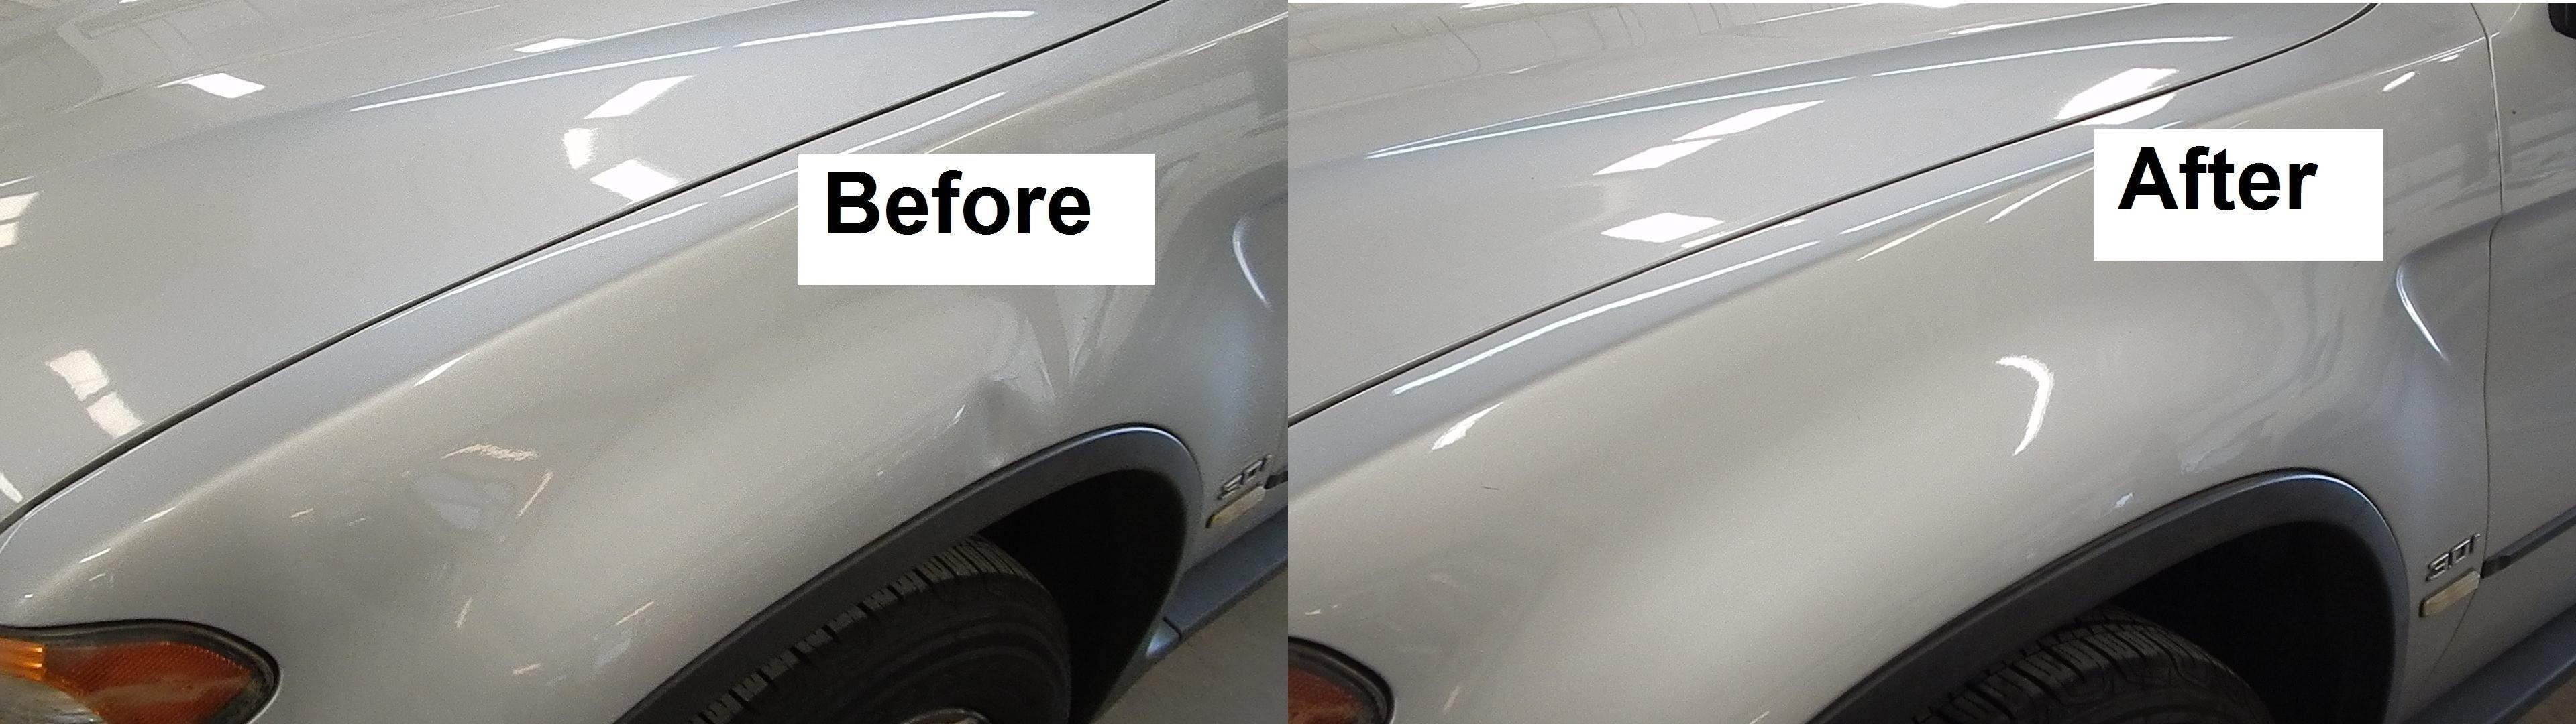 Mobile Dent Removal Business for Sale with Full training provided - No experienc